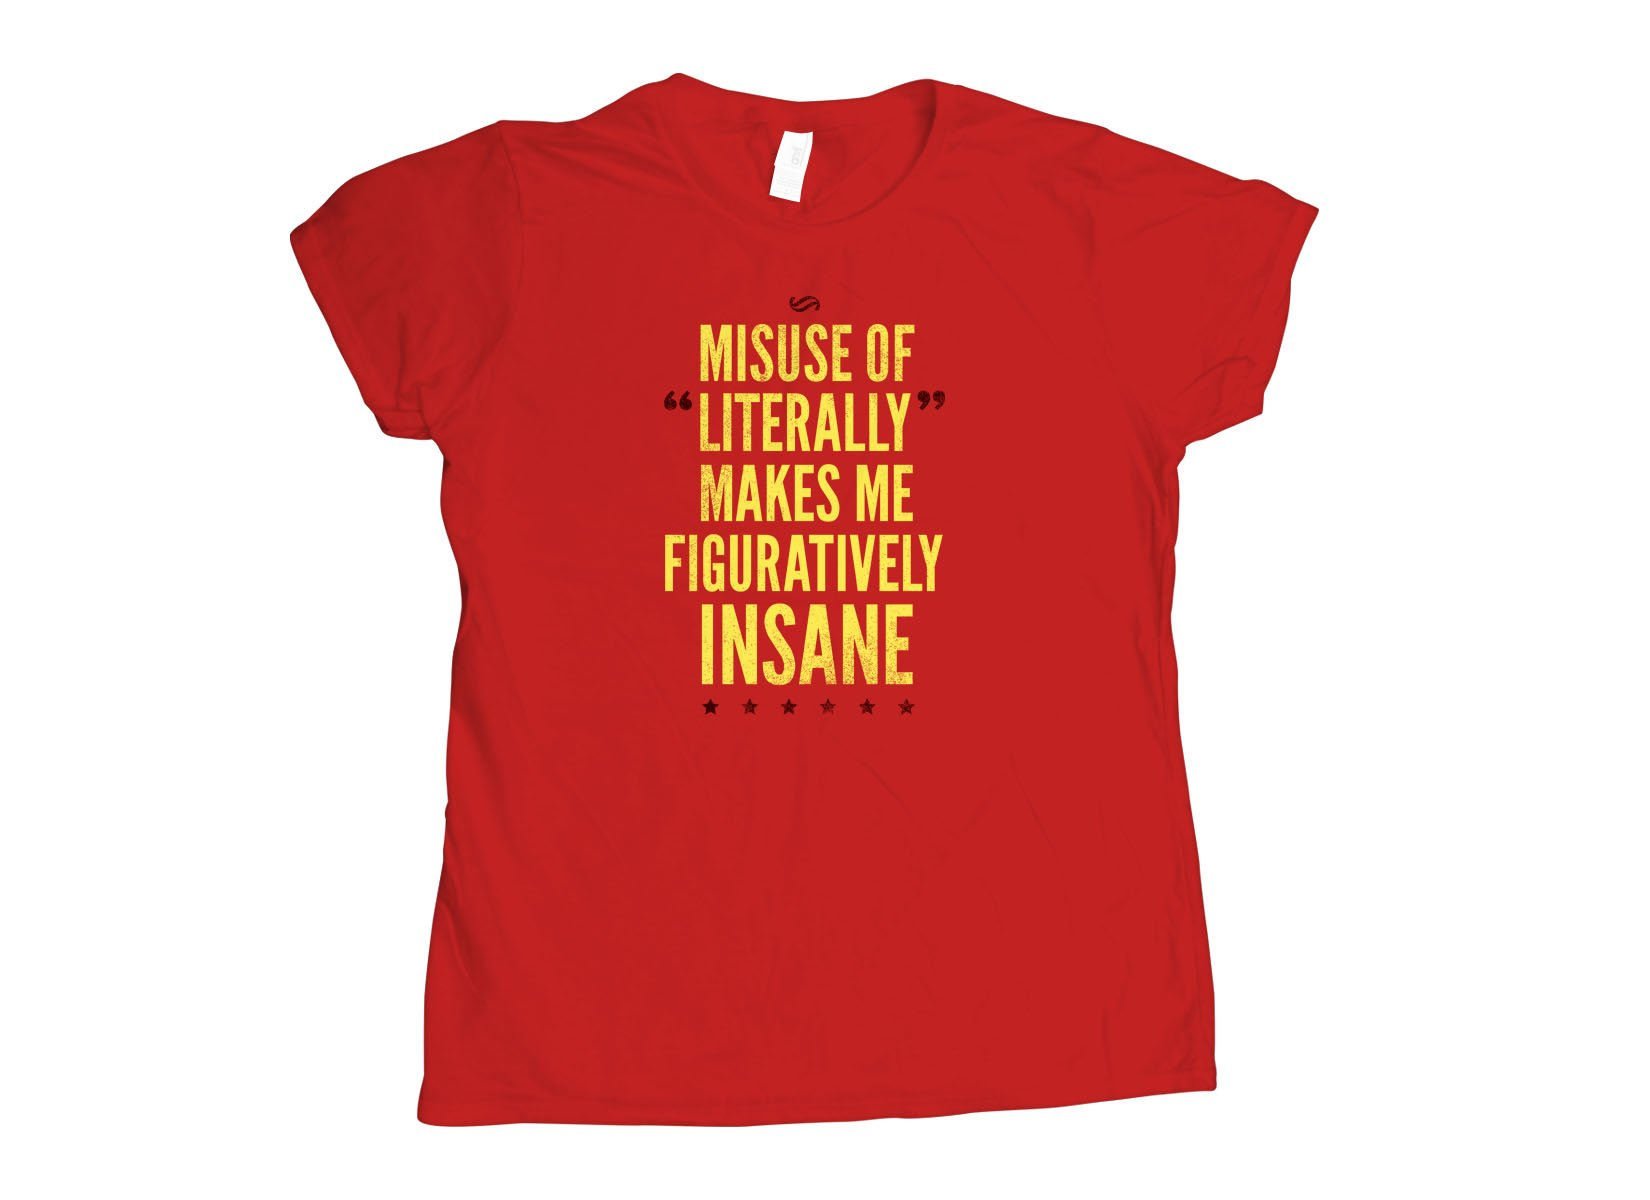 Misuse of Literally Makes Me Figuratively Insane on Womens T-Shirt